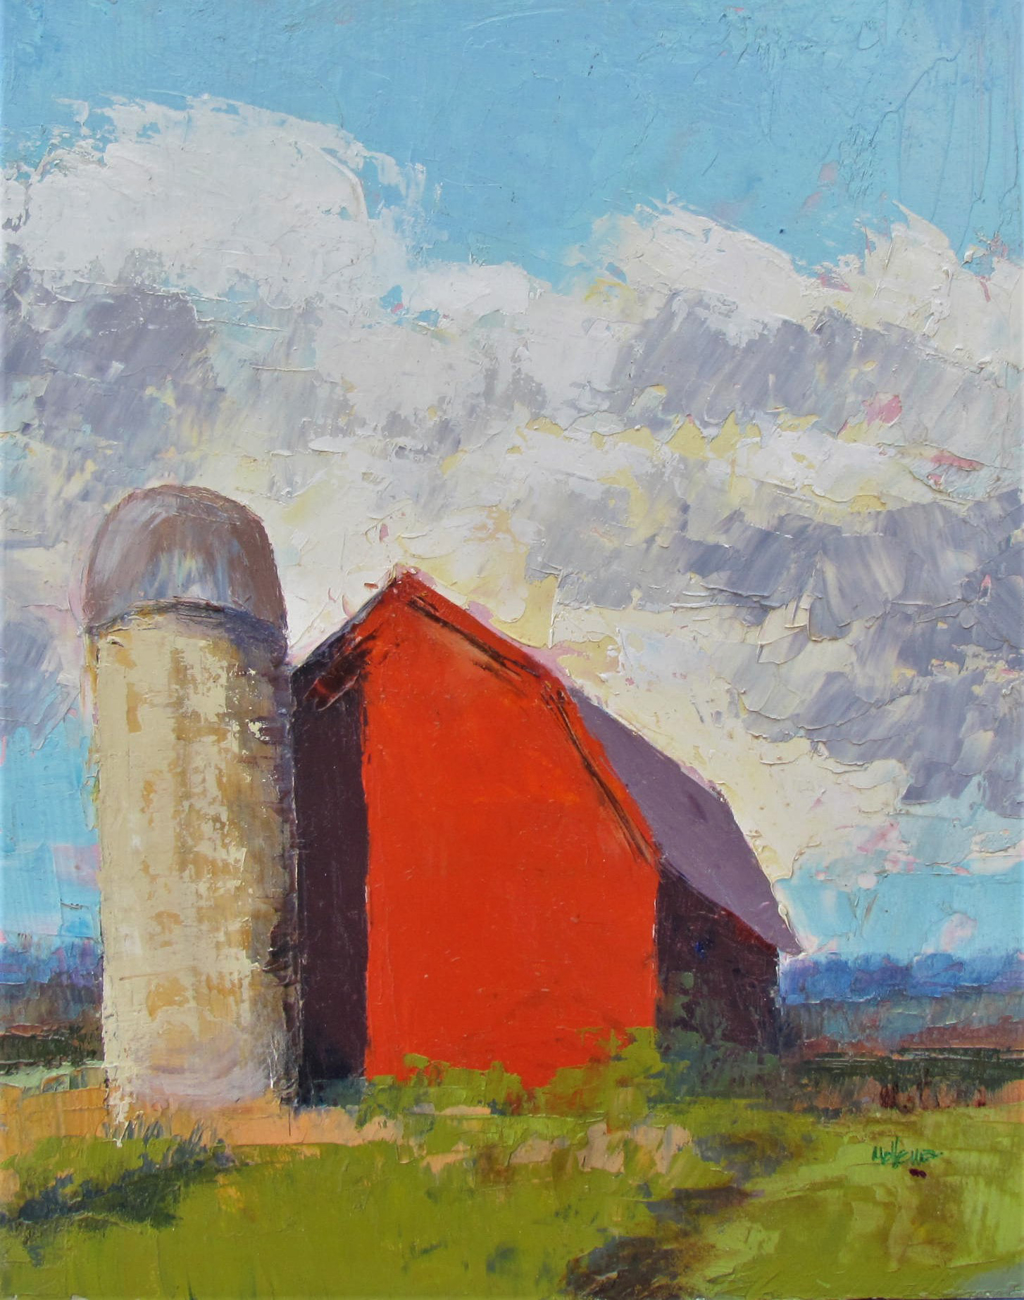 Proud Red Barn by Patti Mollema